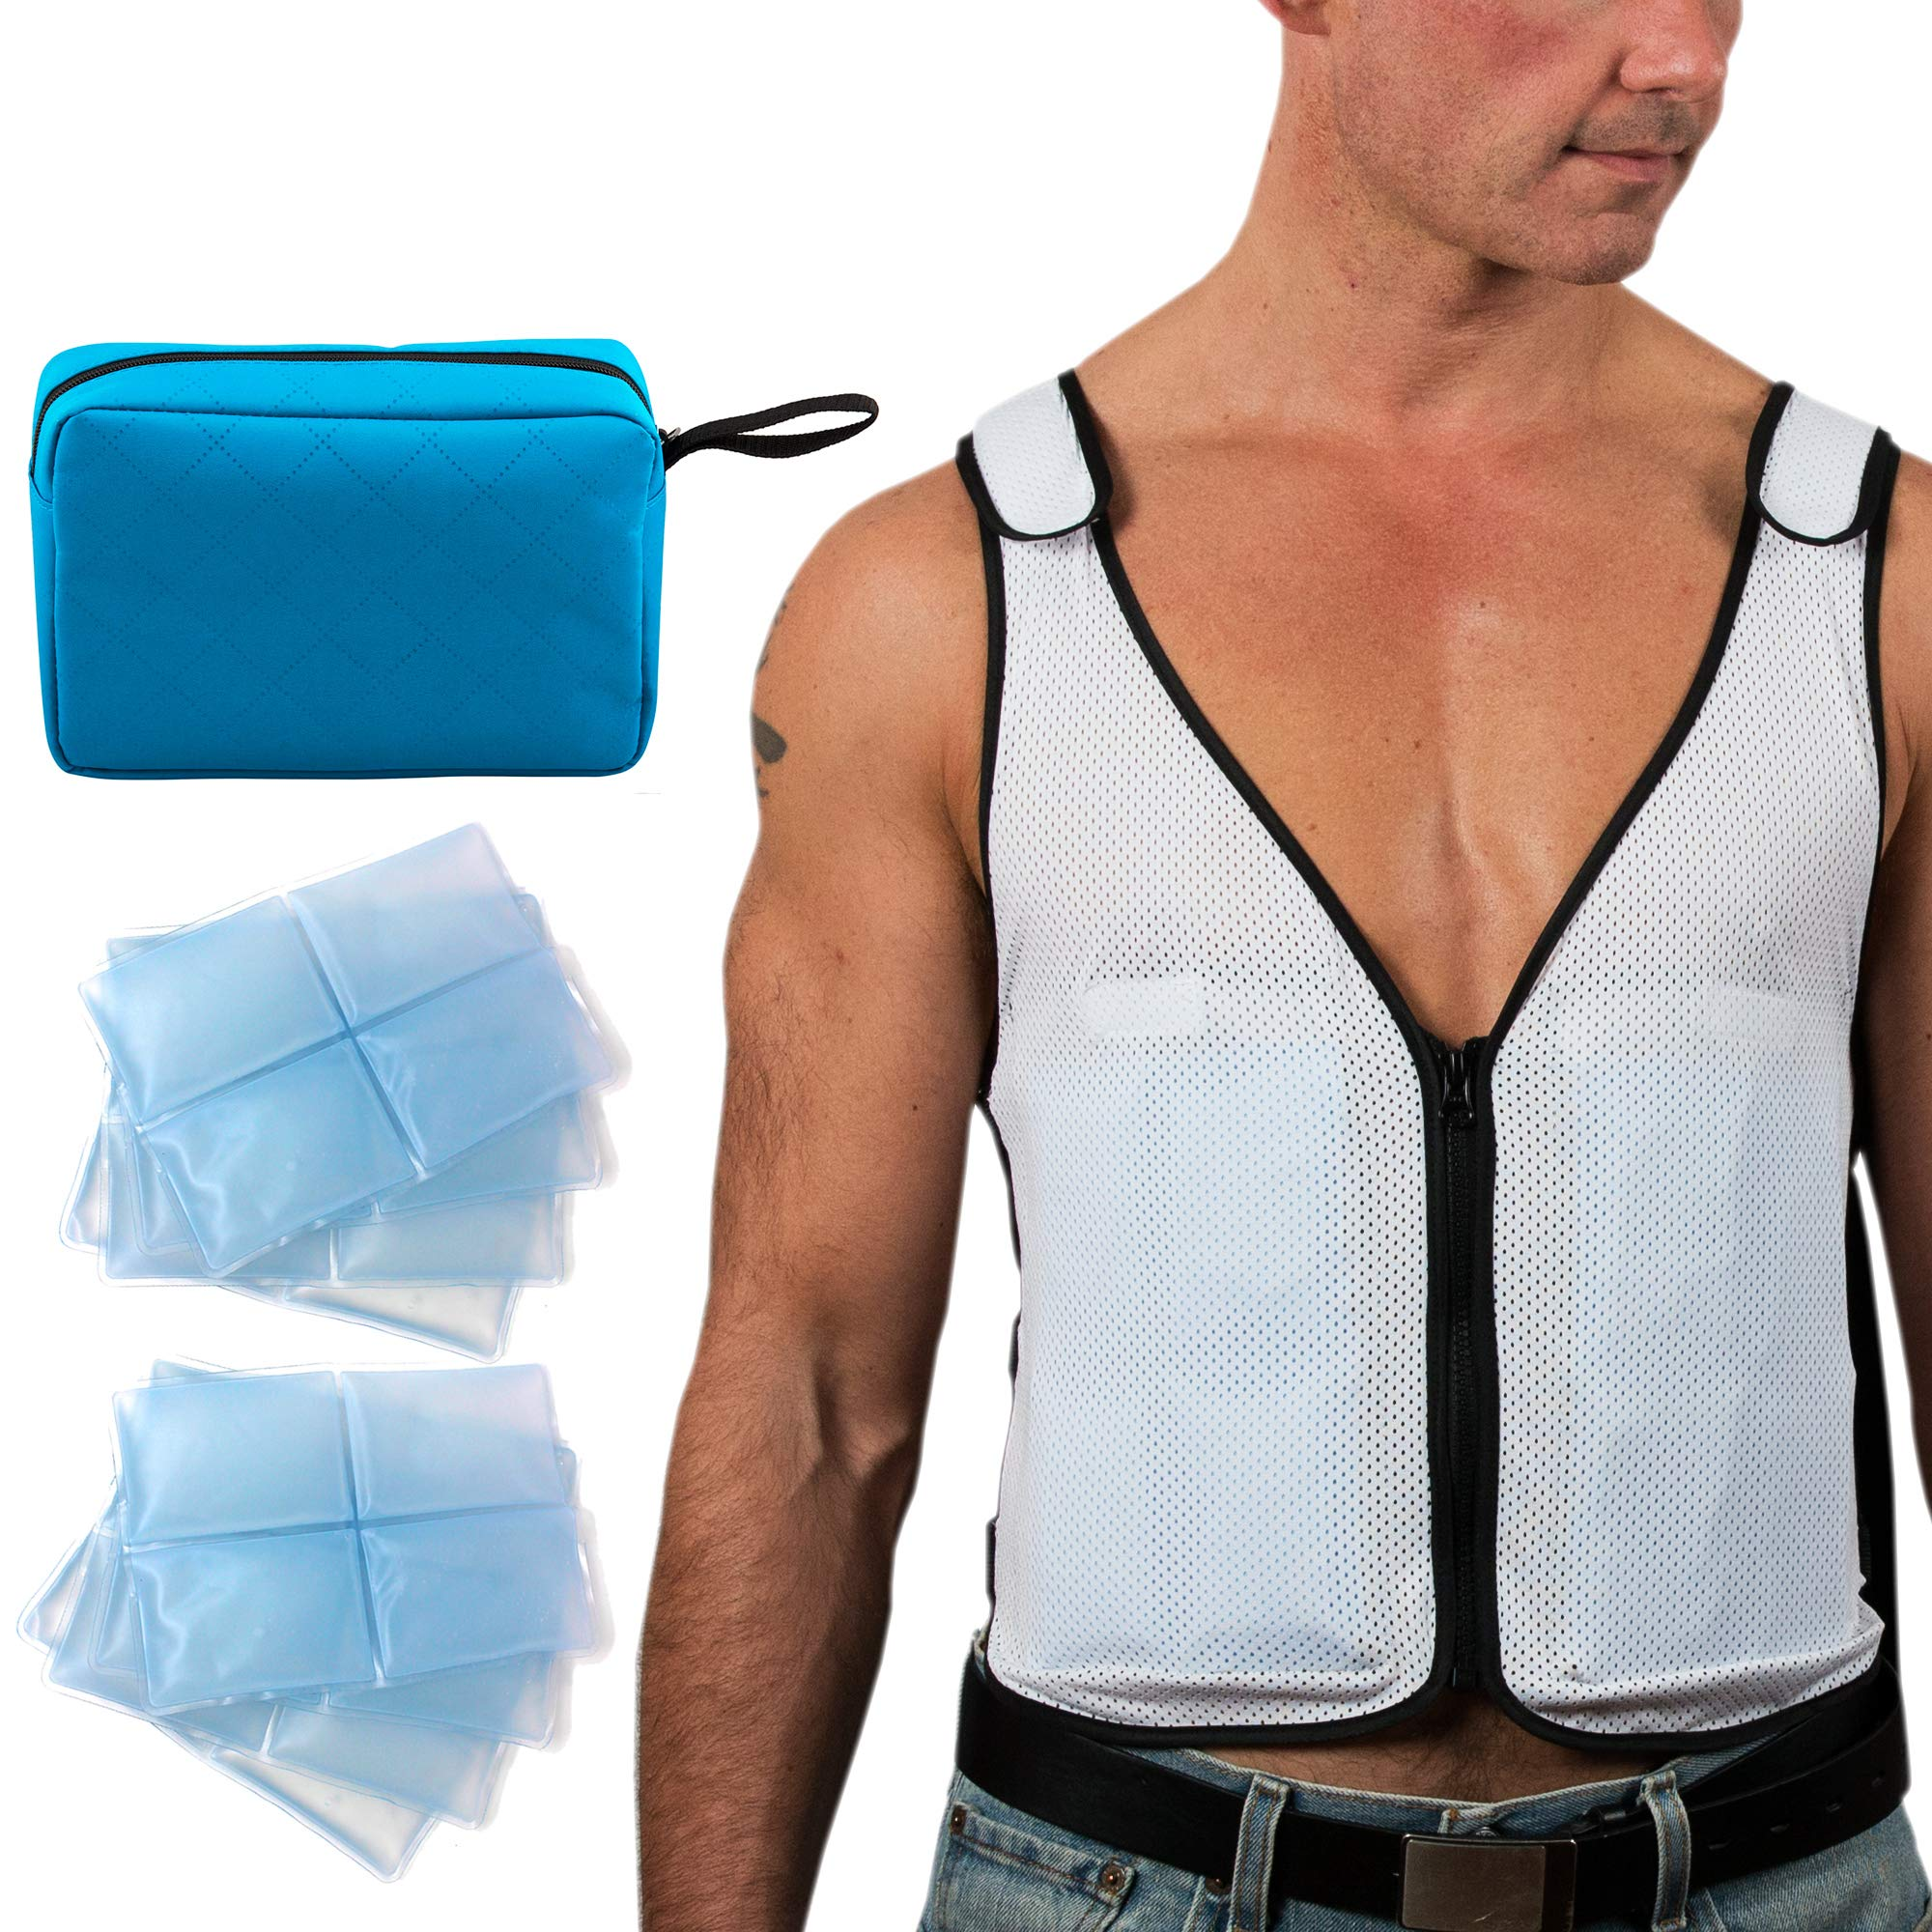 New Home Innovations Cooling Vest | Ice Vest - 8 x Body Ice Packs for Double Cooling Time - #1 Ice Cooling Vest for MS - Sport - Motorcycle - Cooking - Mascot - Cosplay Adjustable Cooling Shirt